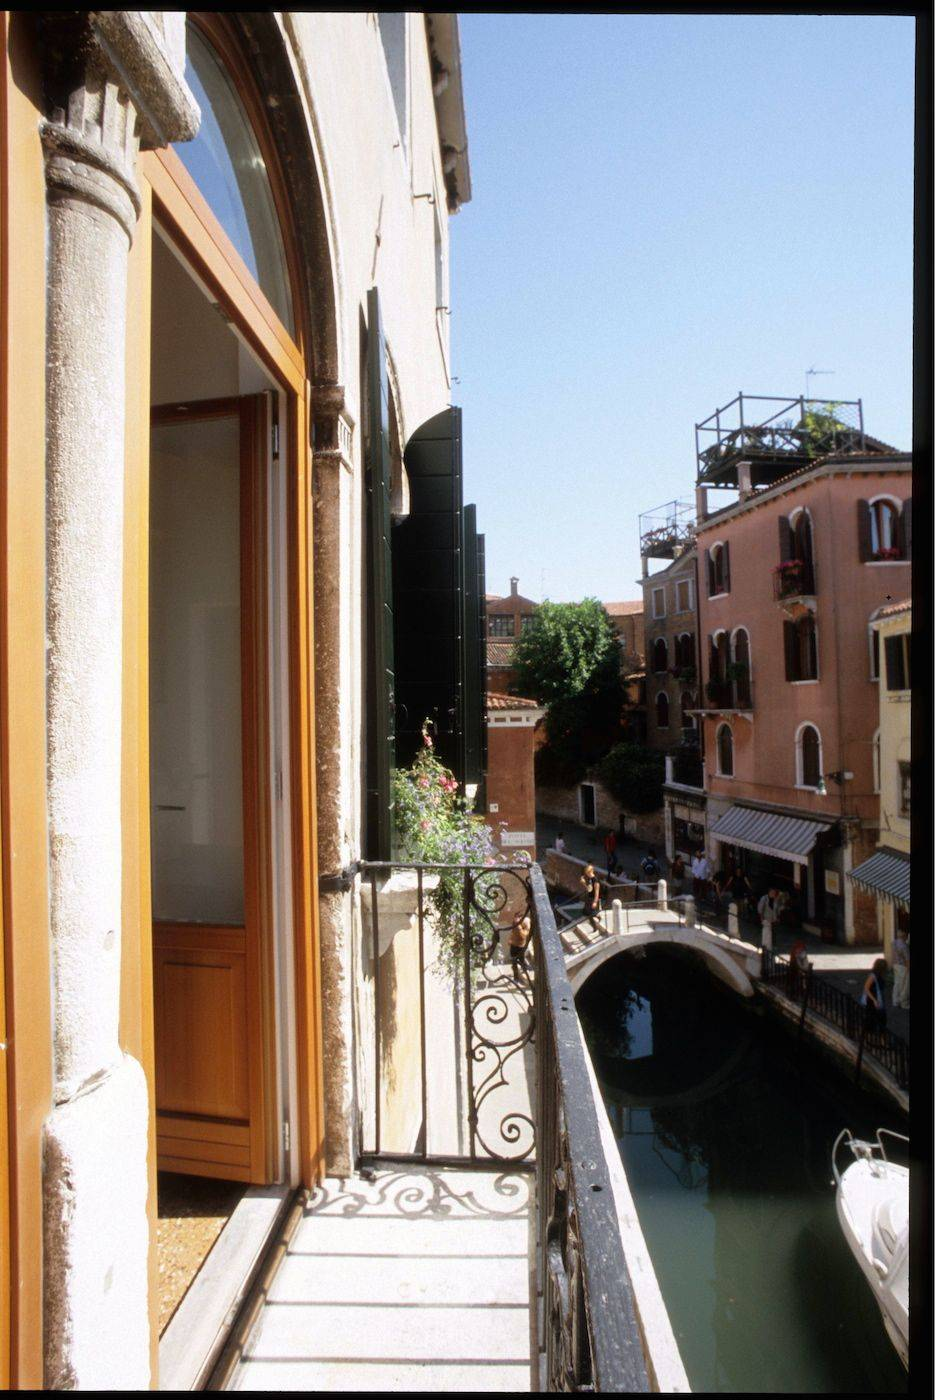 enjoy the truly Venetian canal view from the balcony